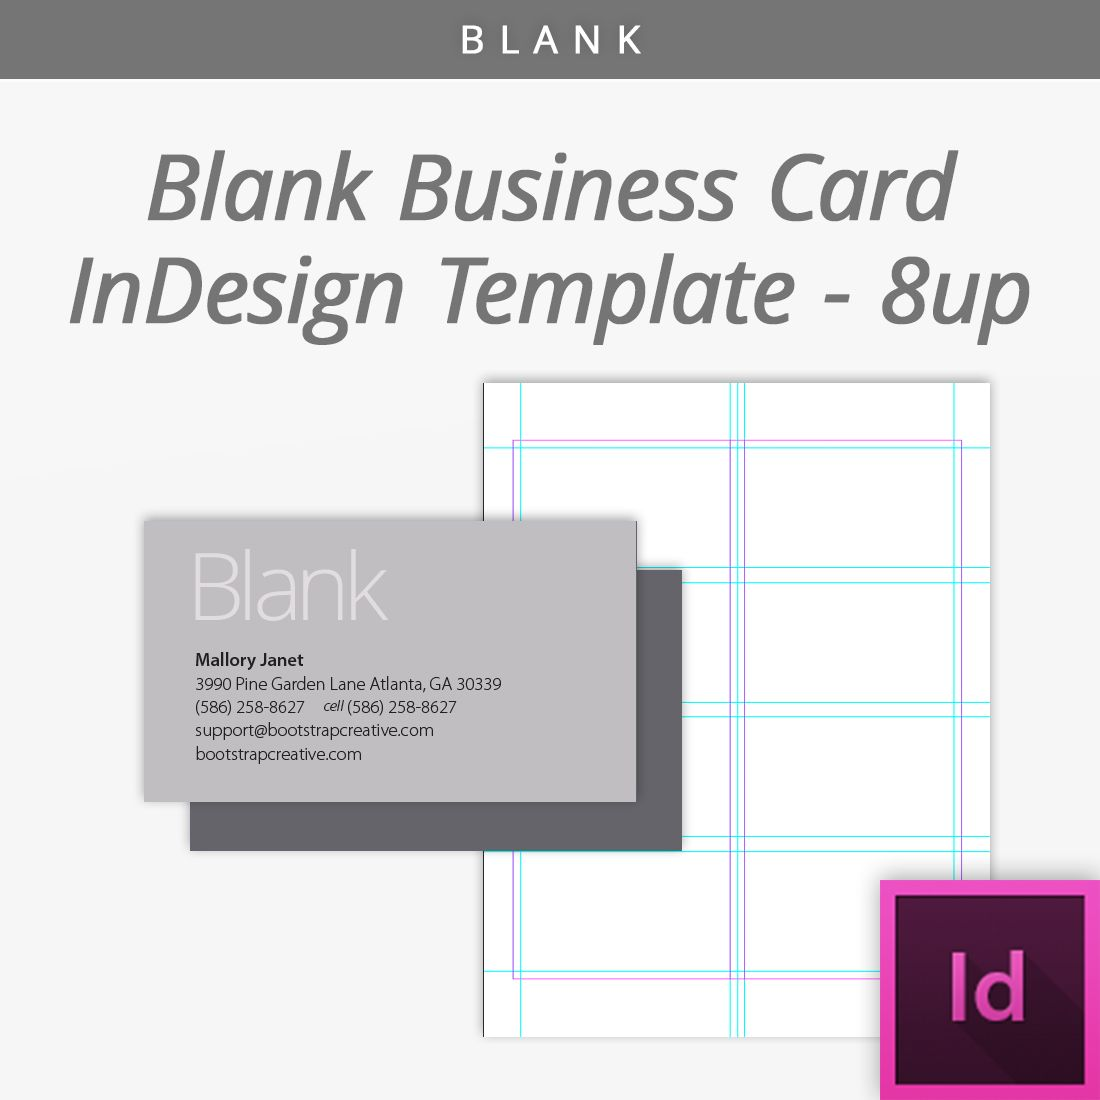 Blank indesign business card template 8 up free download for 12 up business card template